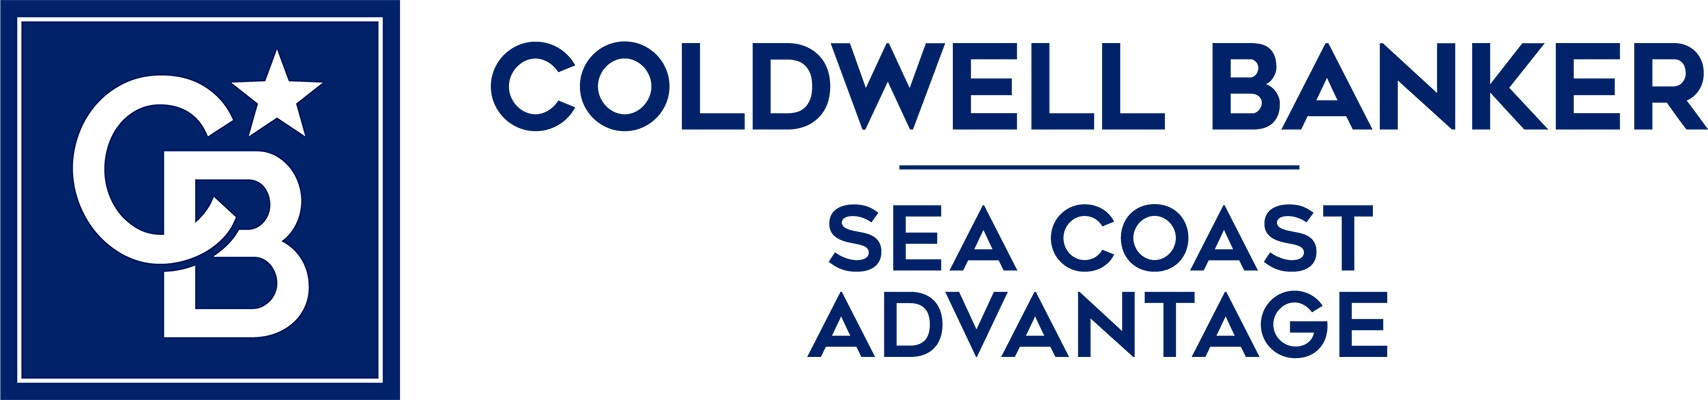 Carol Pendergrass - Coldwell Banker Sea Coast Advantage Realty Logo